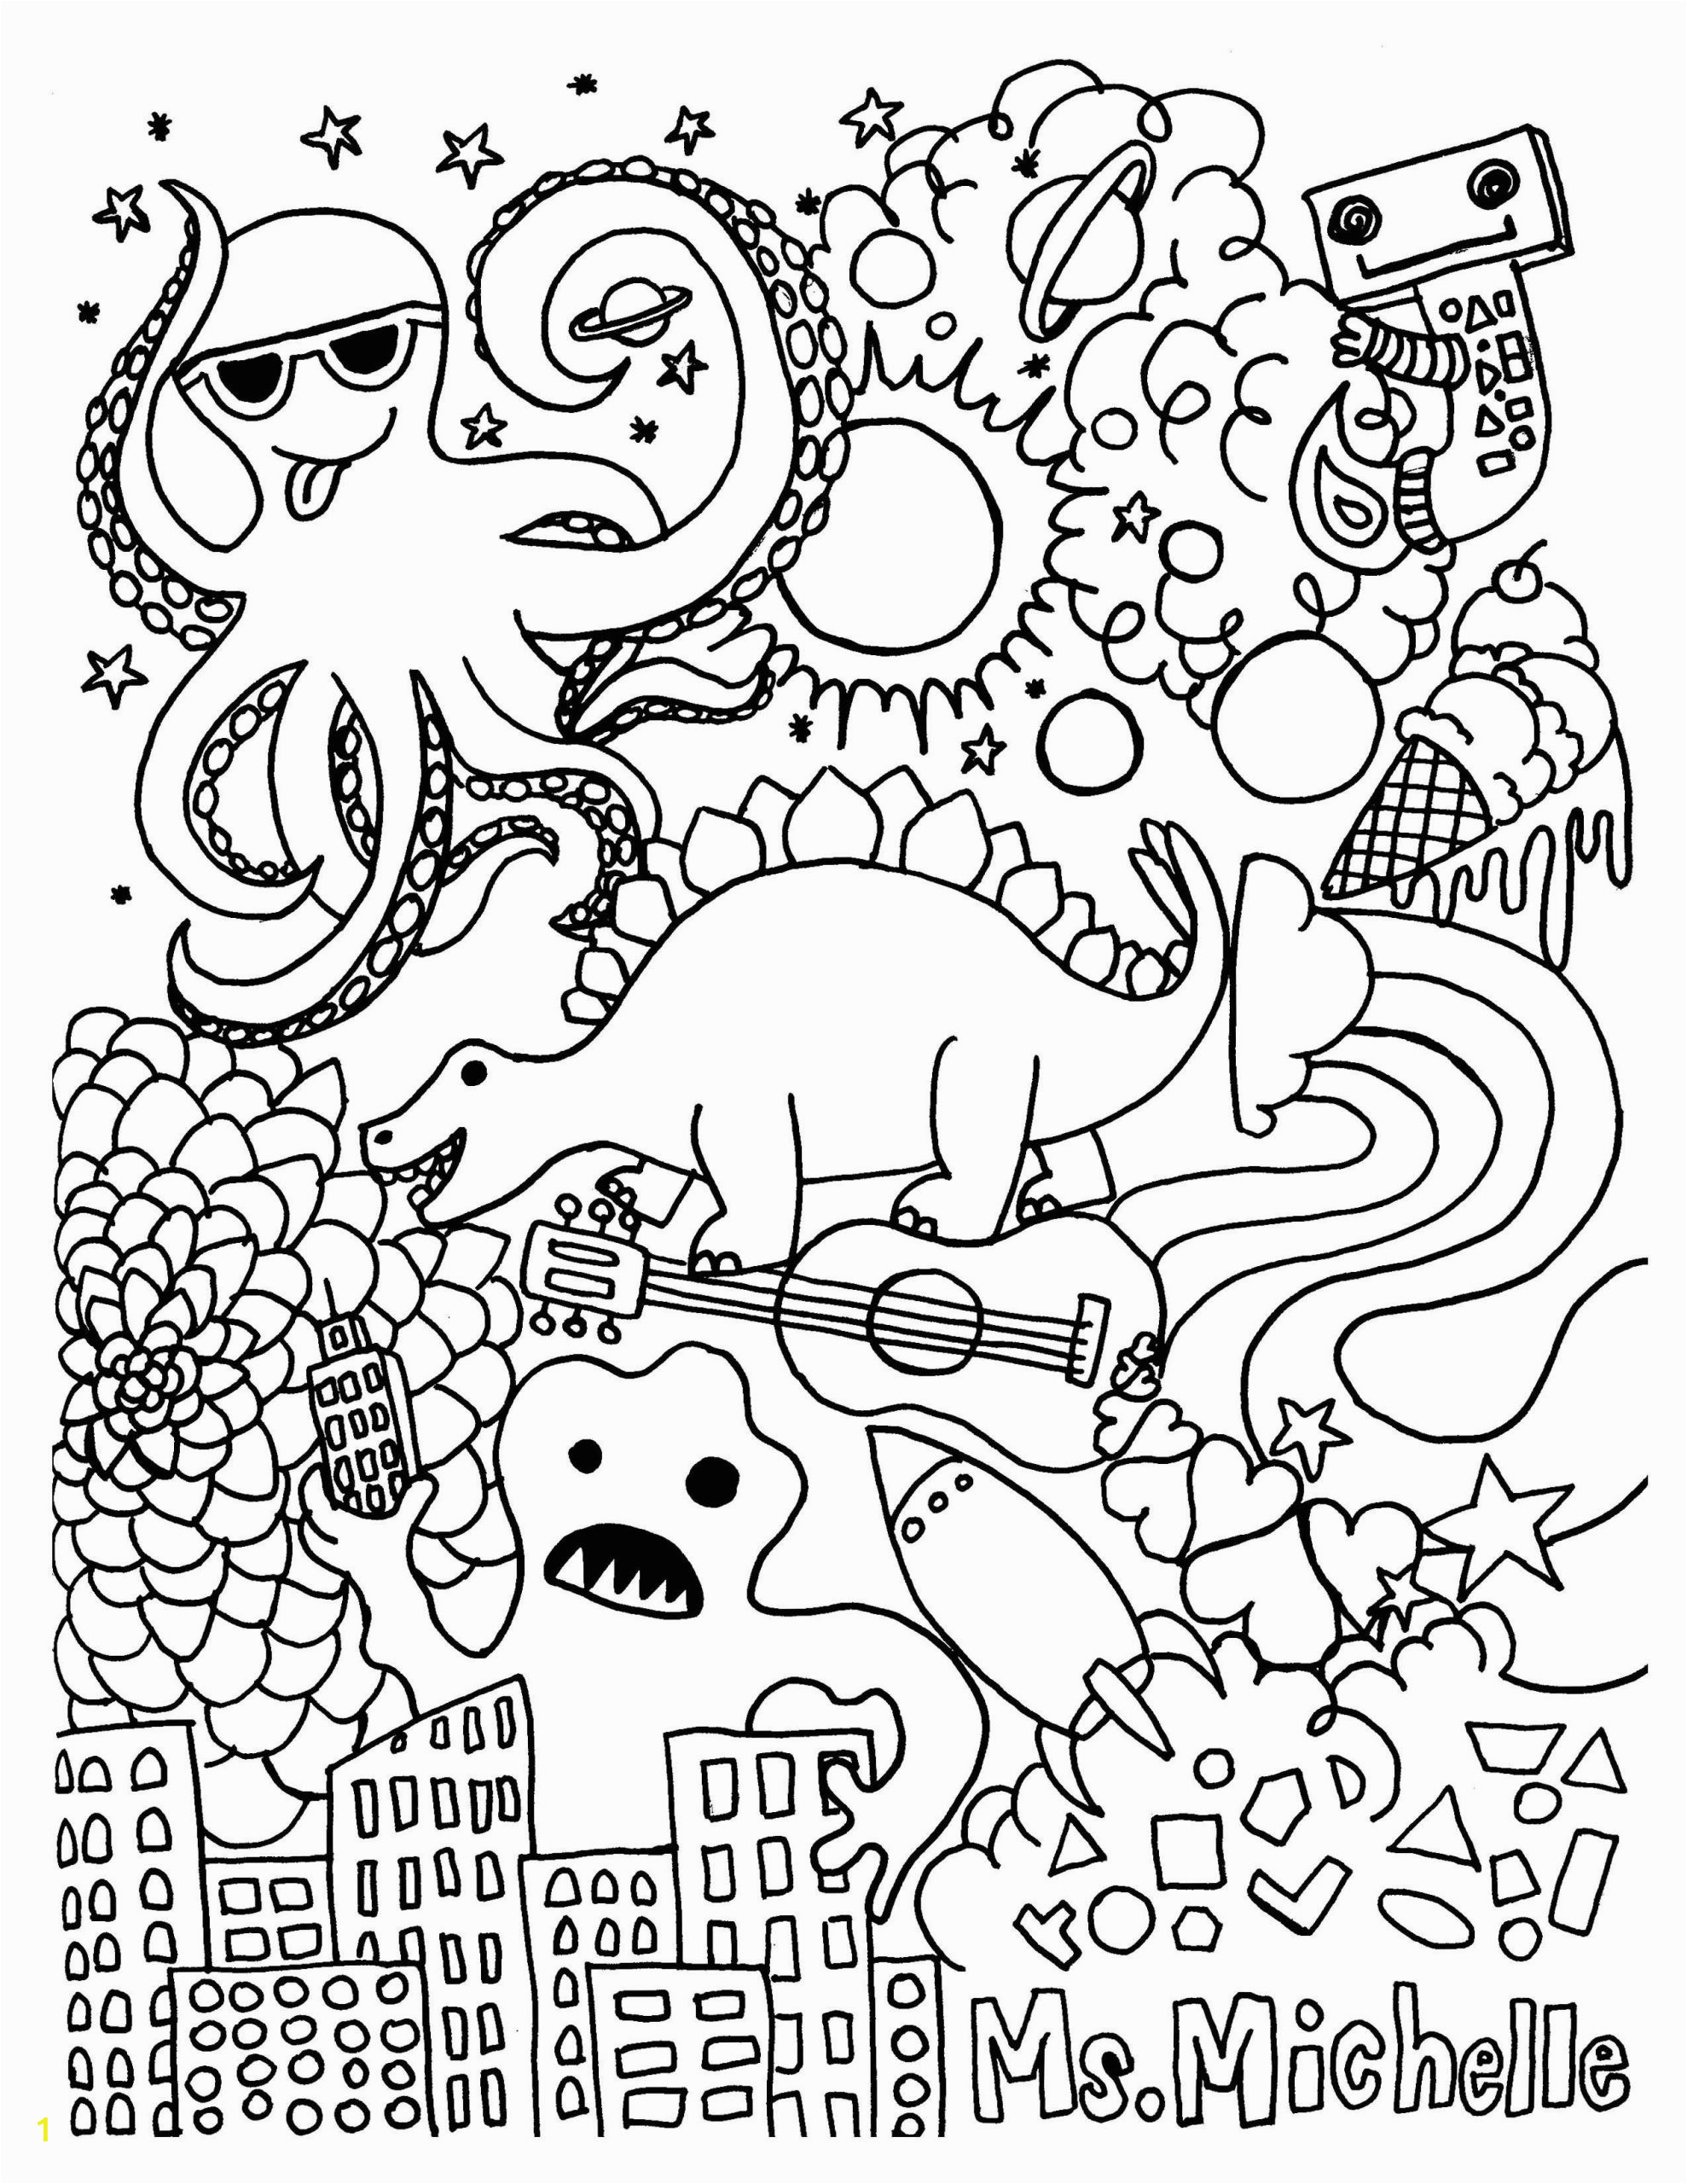 Mermaid Coloring Pages Easy Coloring Books Fruit the Spirit Coloring Page Birthday